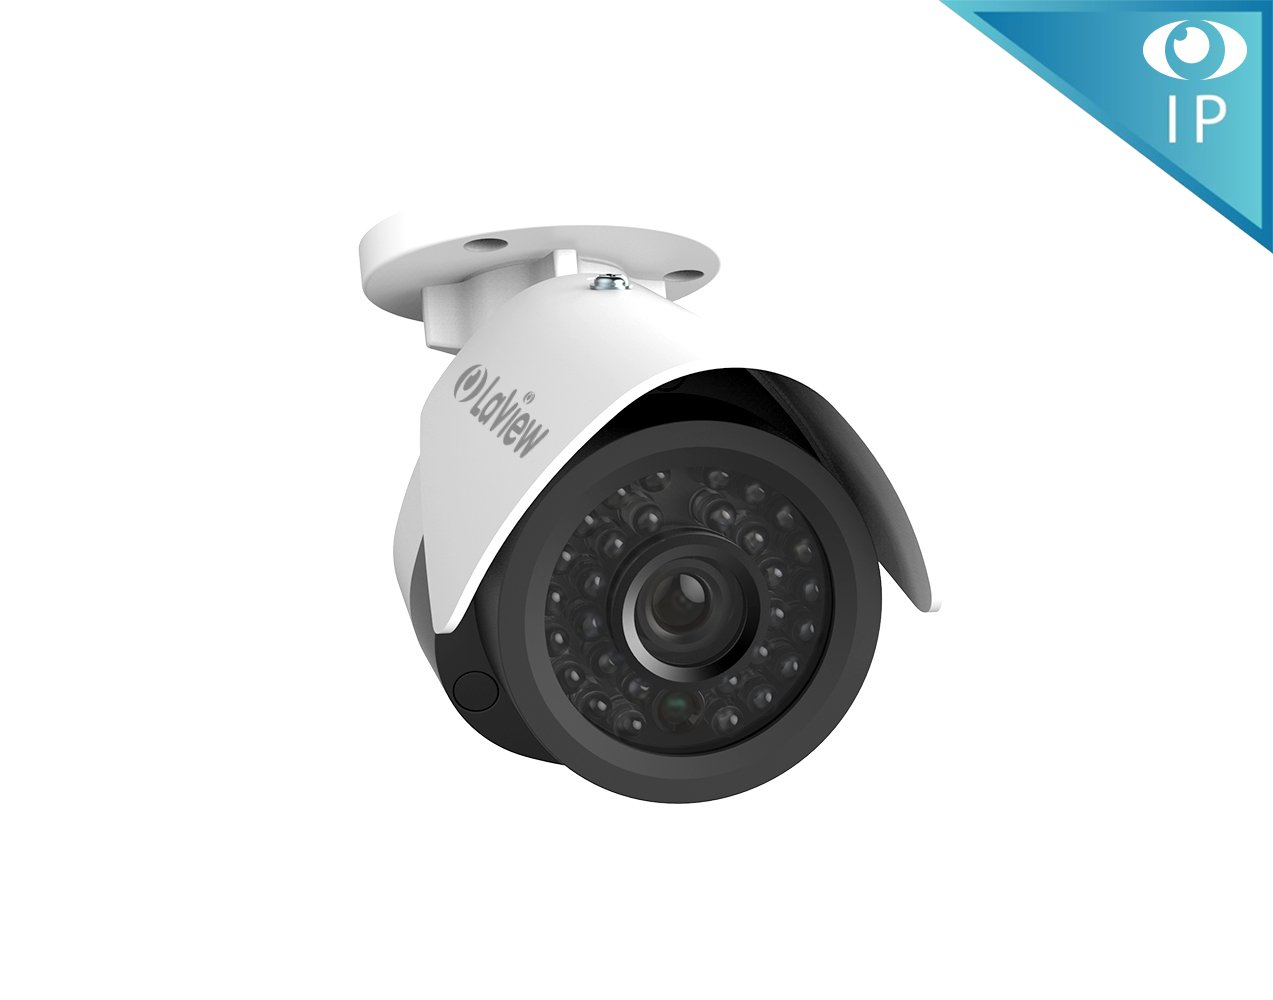 LaView 1080P IP 2MP High Resolution, Day and Night, Indoor/Outdoor, White Bullet 4MP Security Combatable System Camera, LV-PB932F4